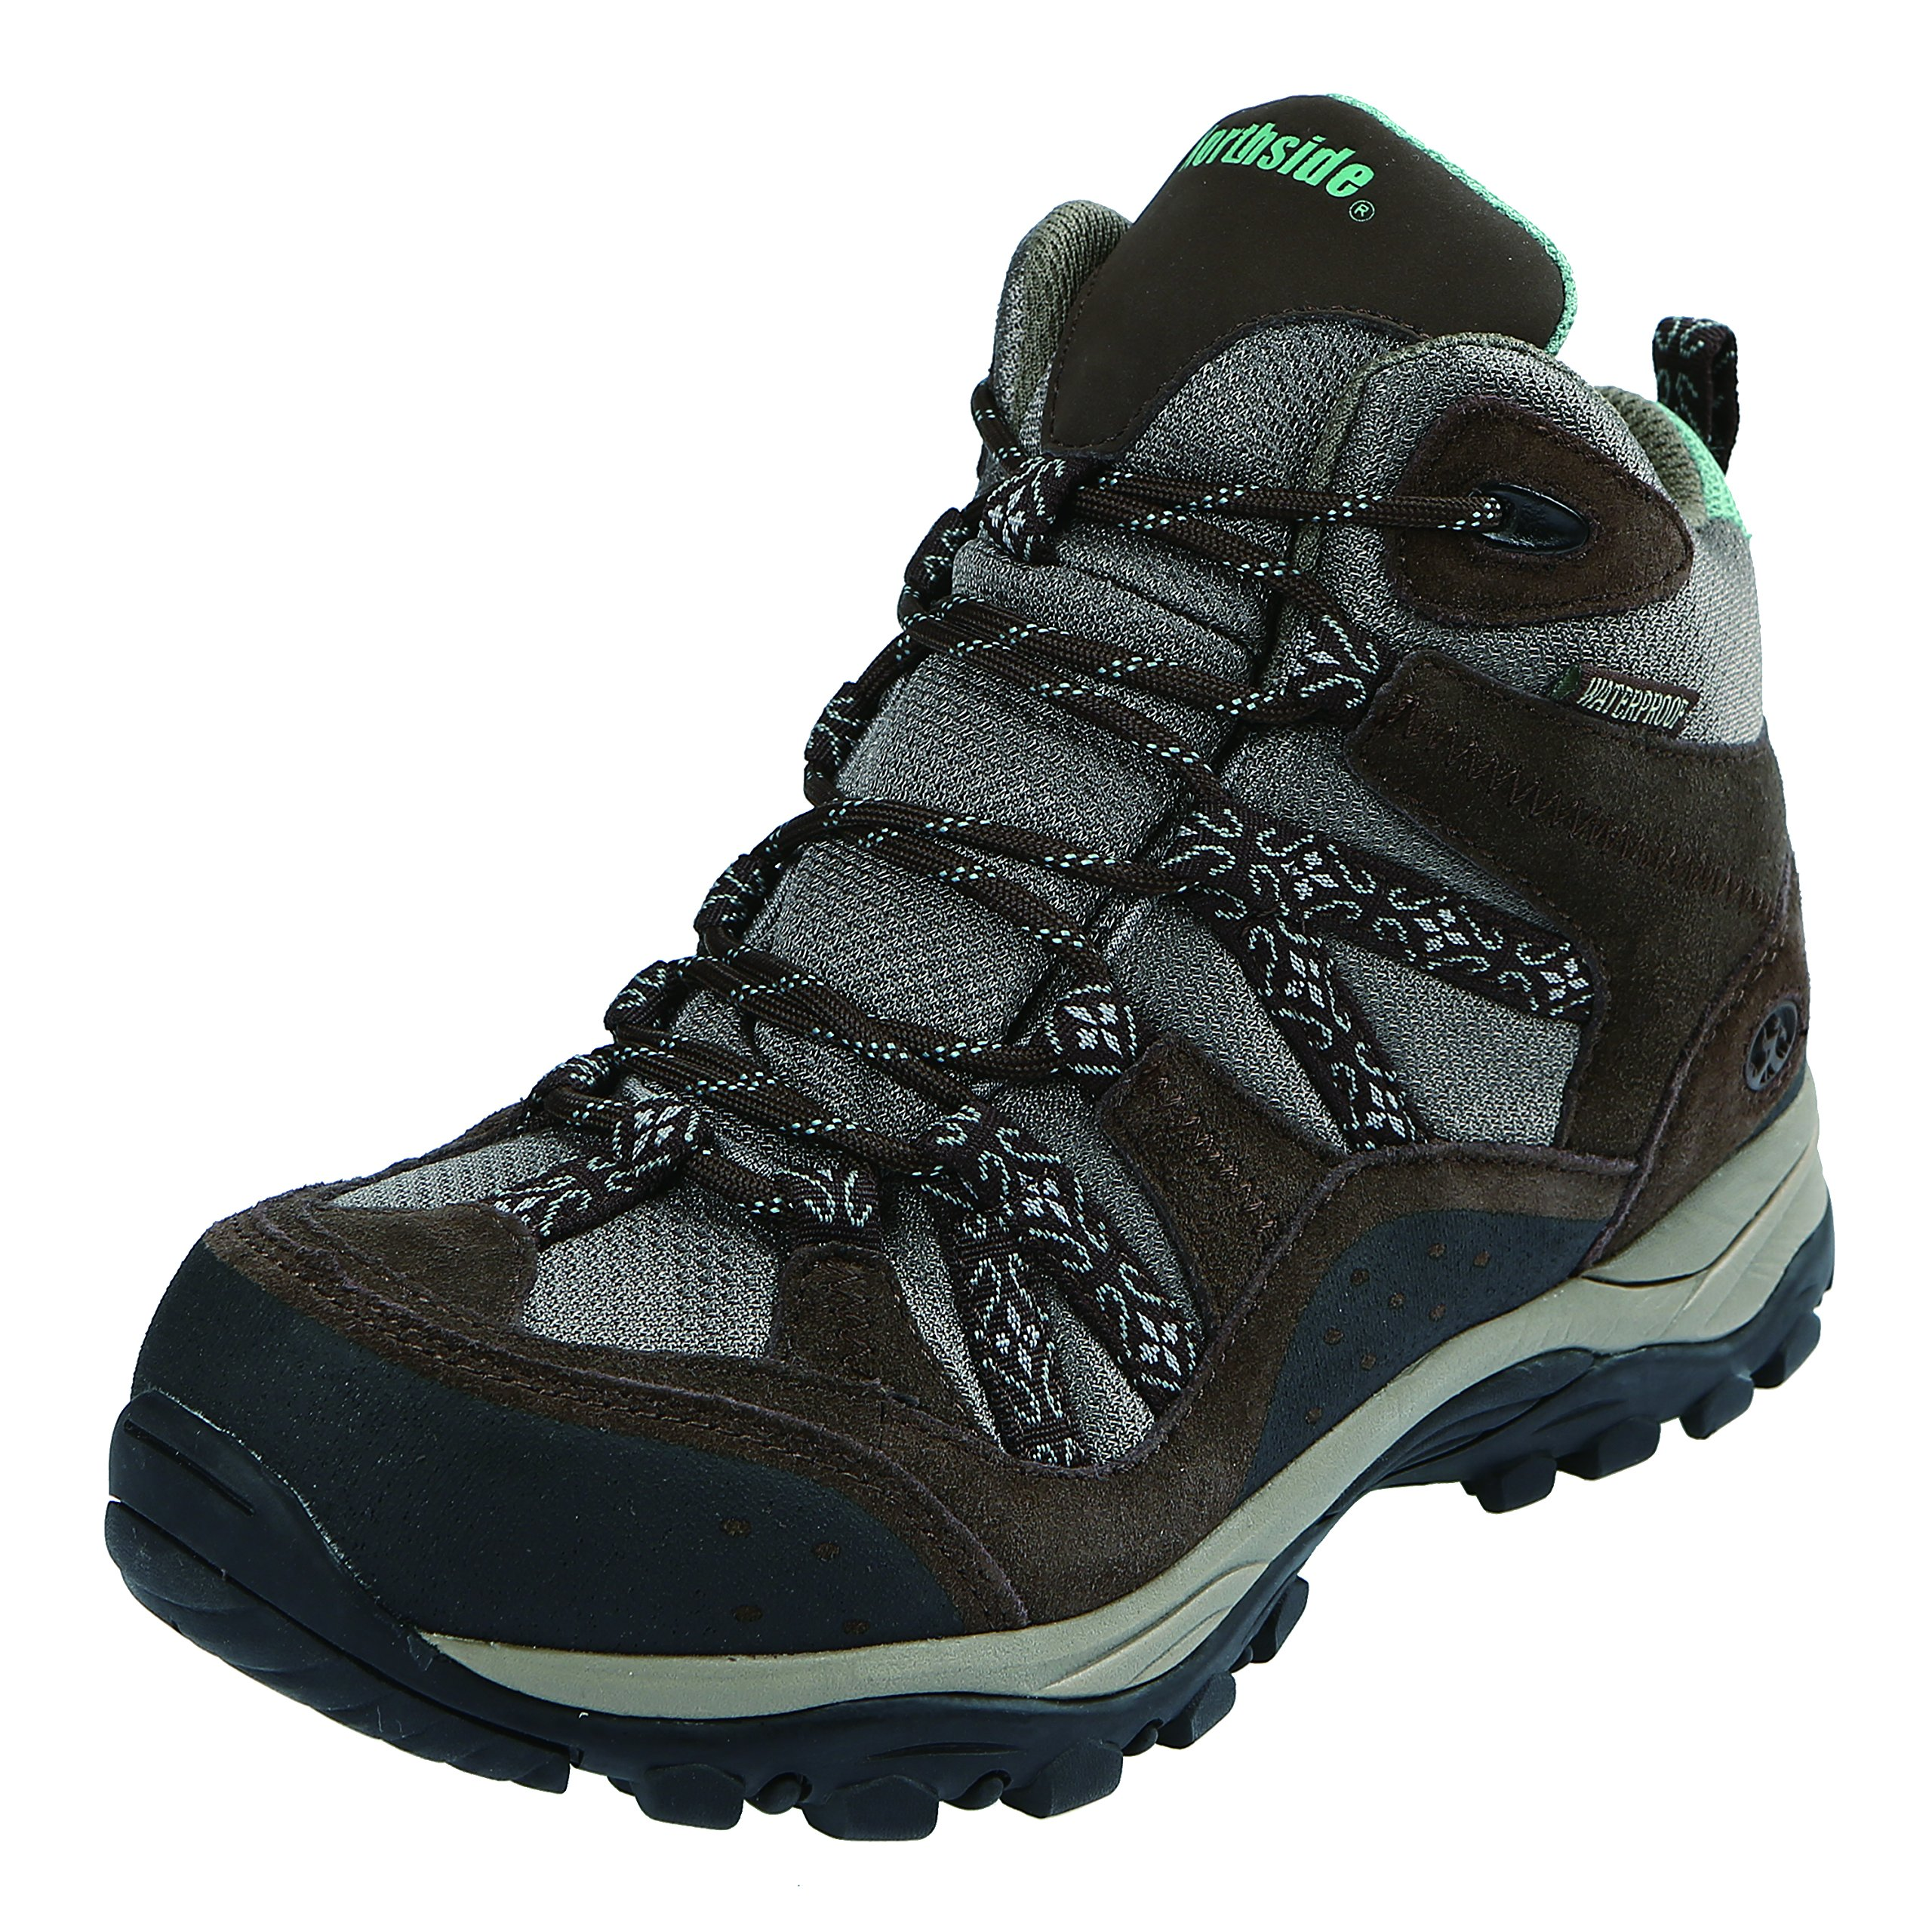 Northside Women's Freemont Waterproof Hiking Boot, Dark Brown/Sage, 8 M US by Northside